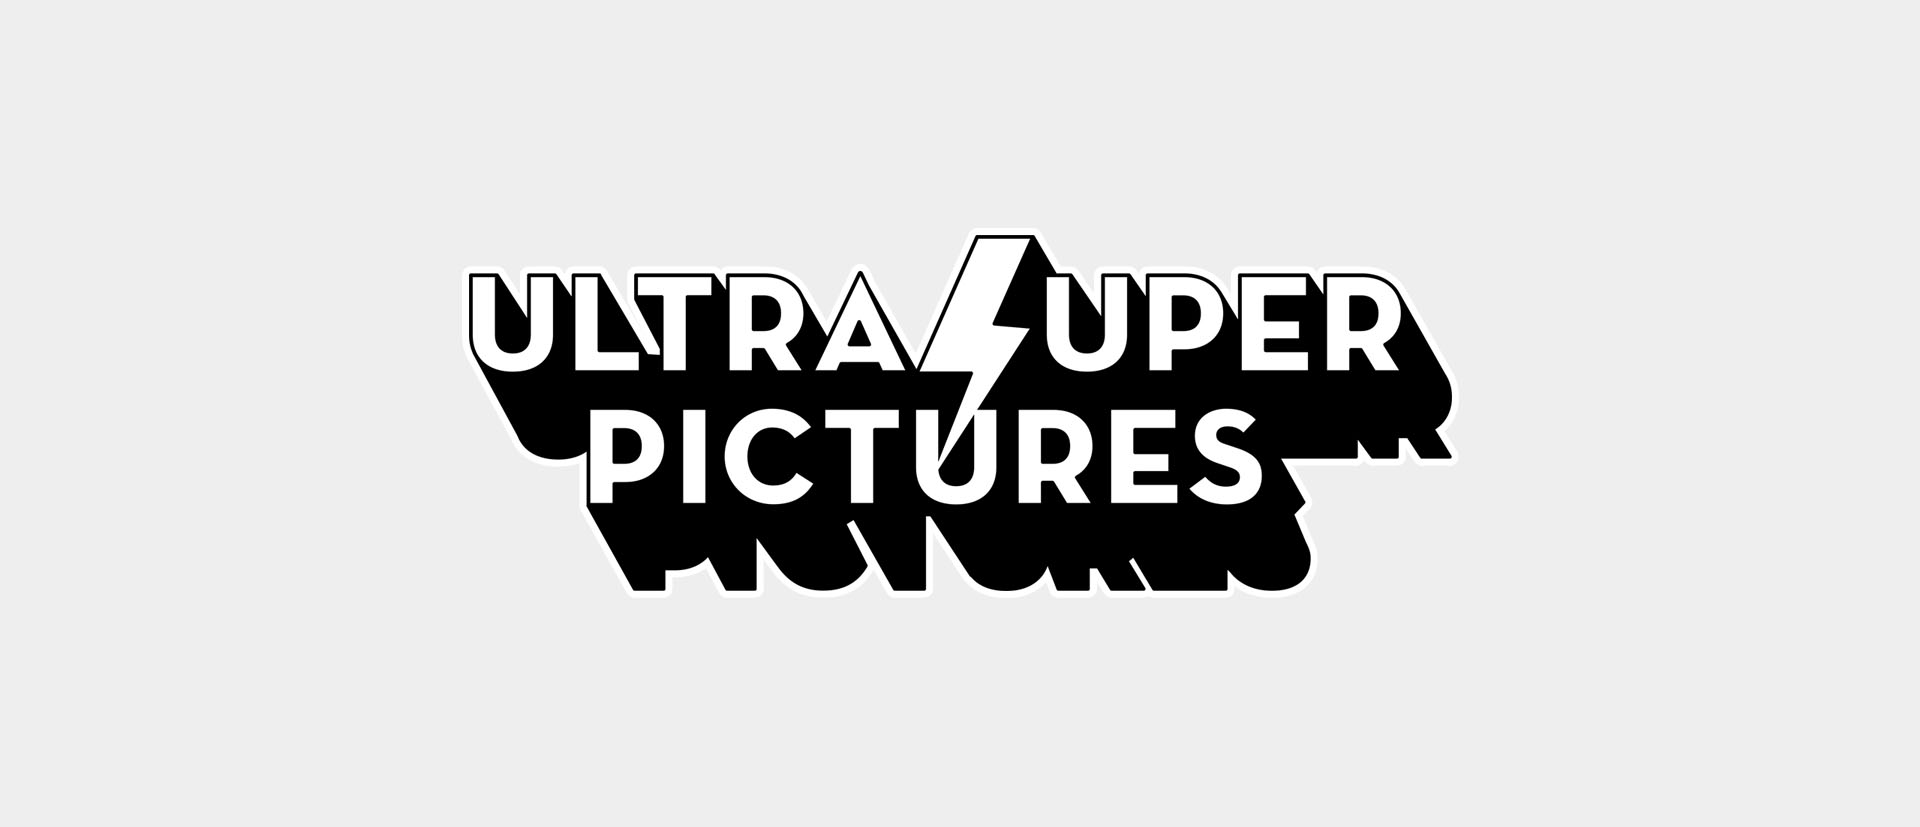 ULTRA SUPER PICTURES 3